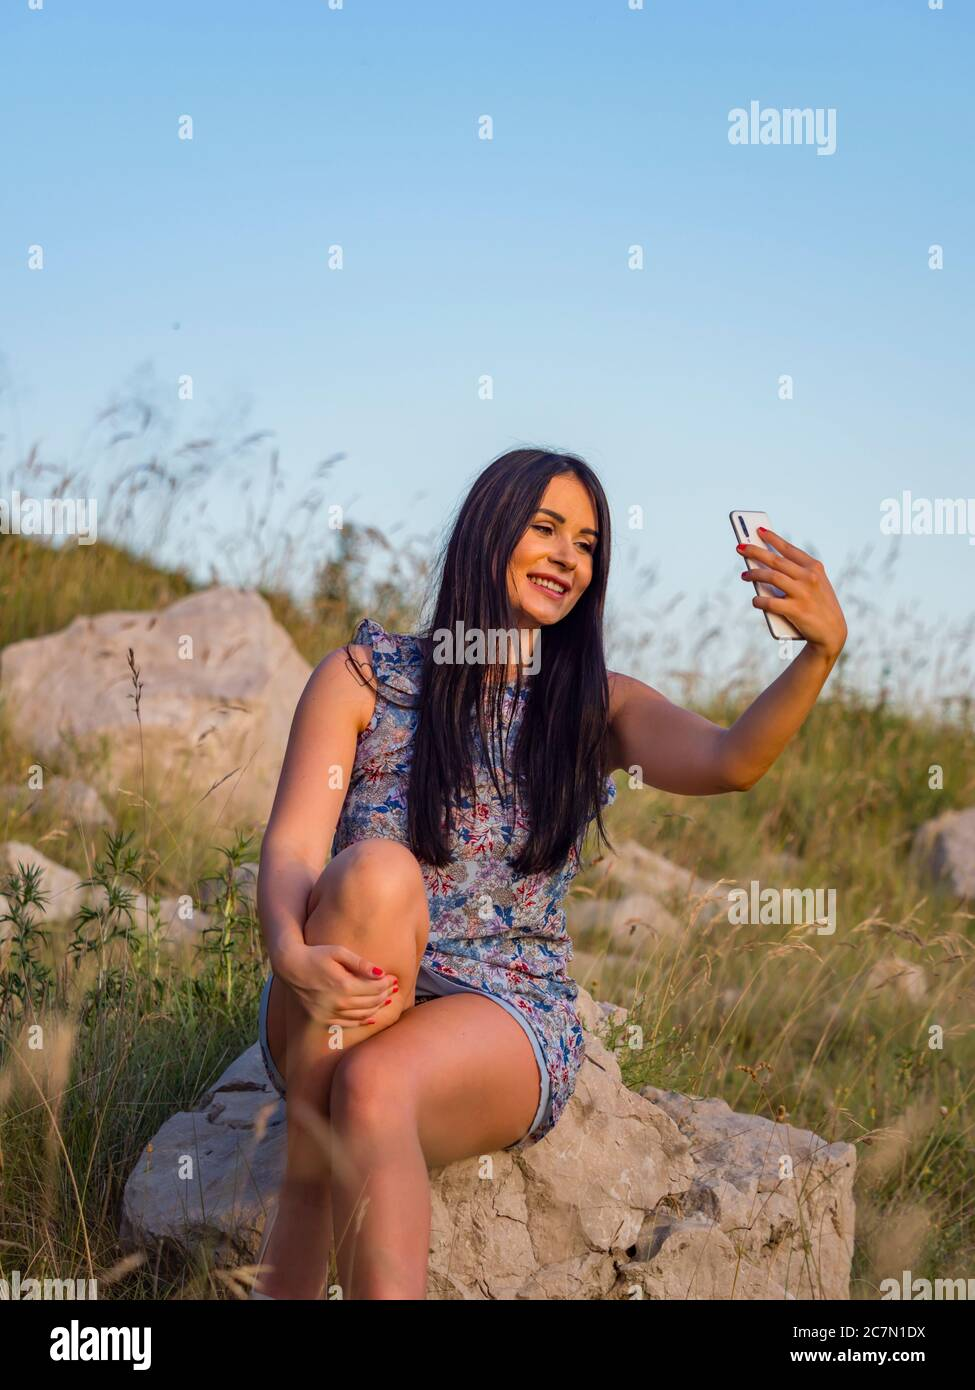 Selfie in nature using hand holding smartphone teengirl is sitting on rock in natural environment smiling smile happy optimistic joy joyful Stock Photo